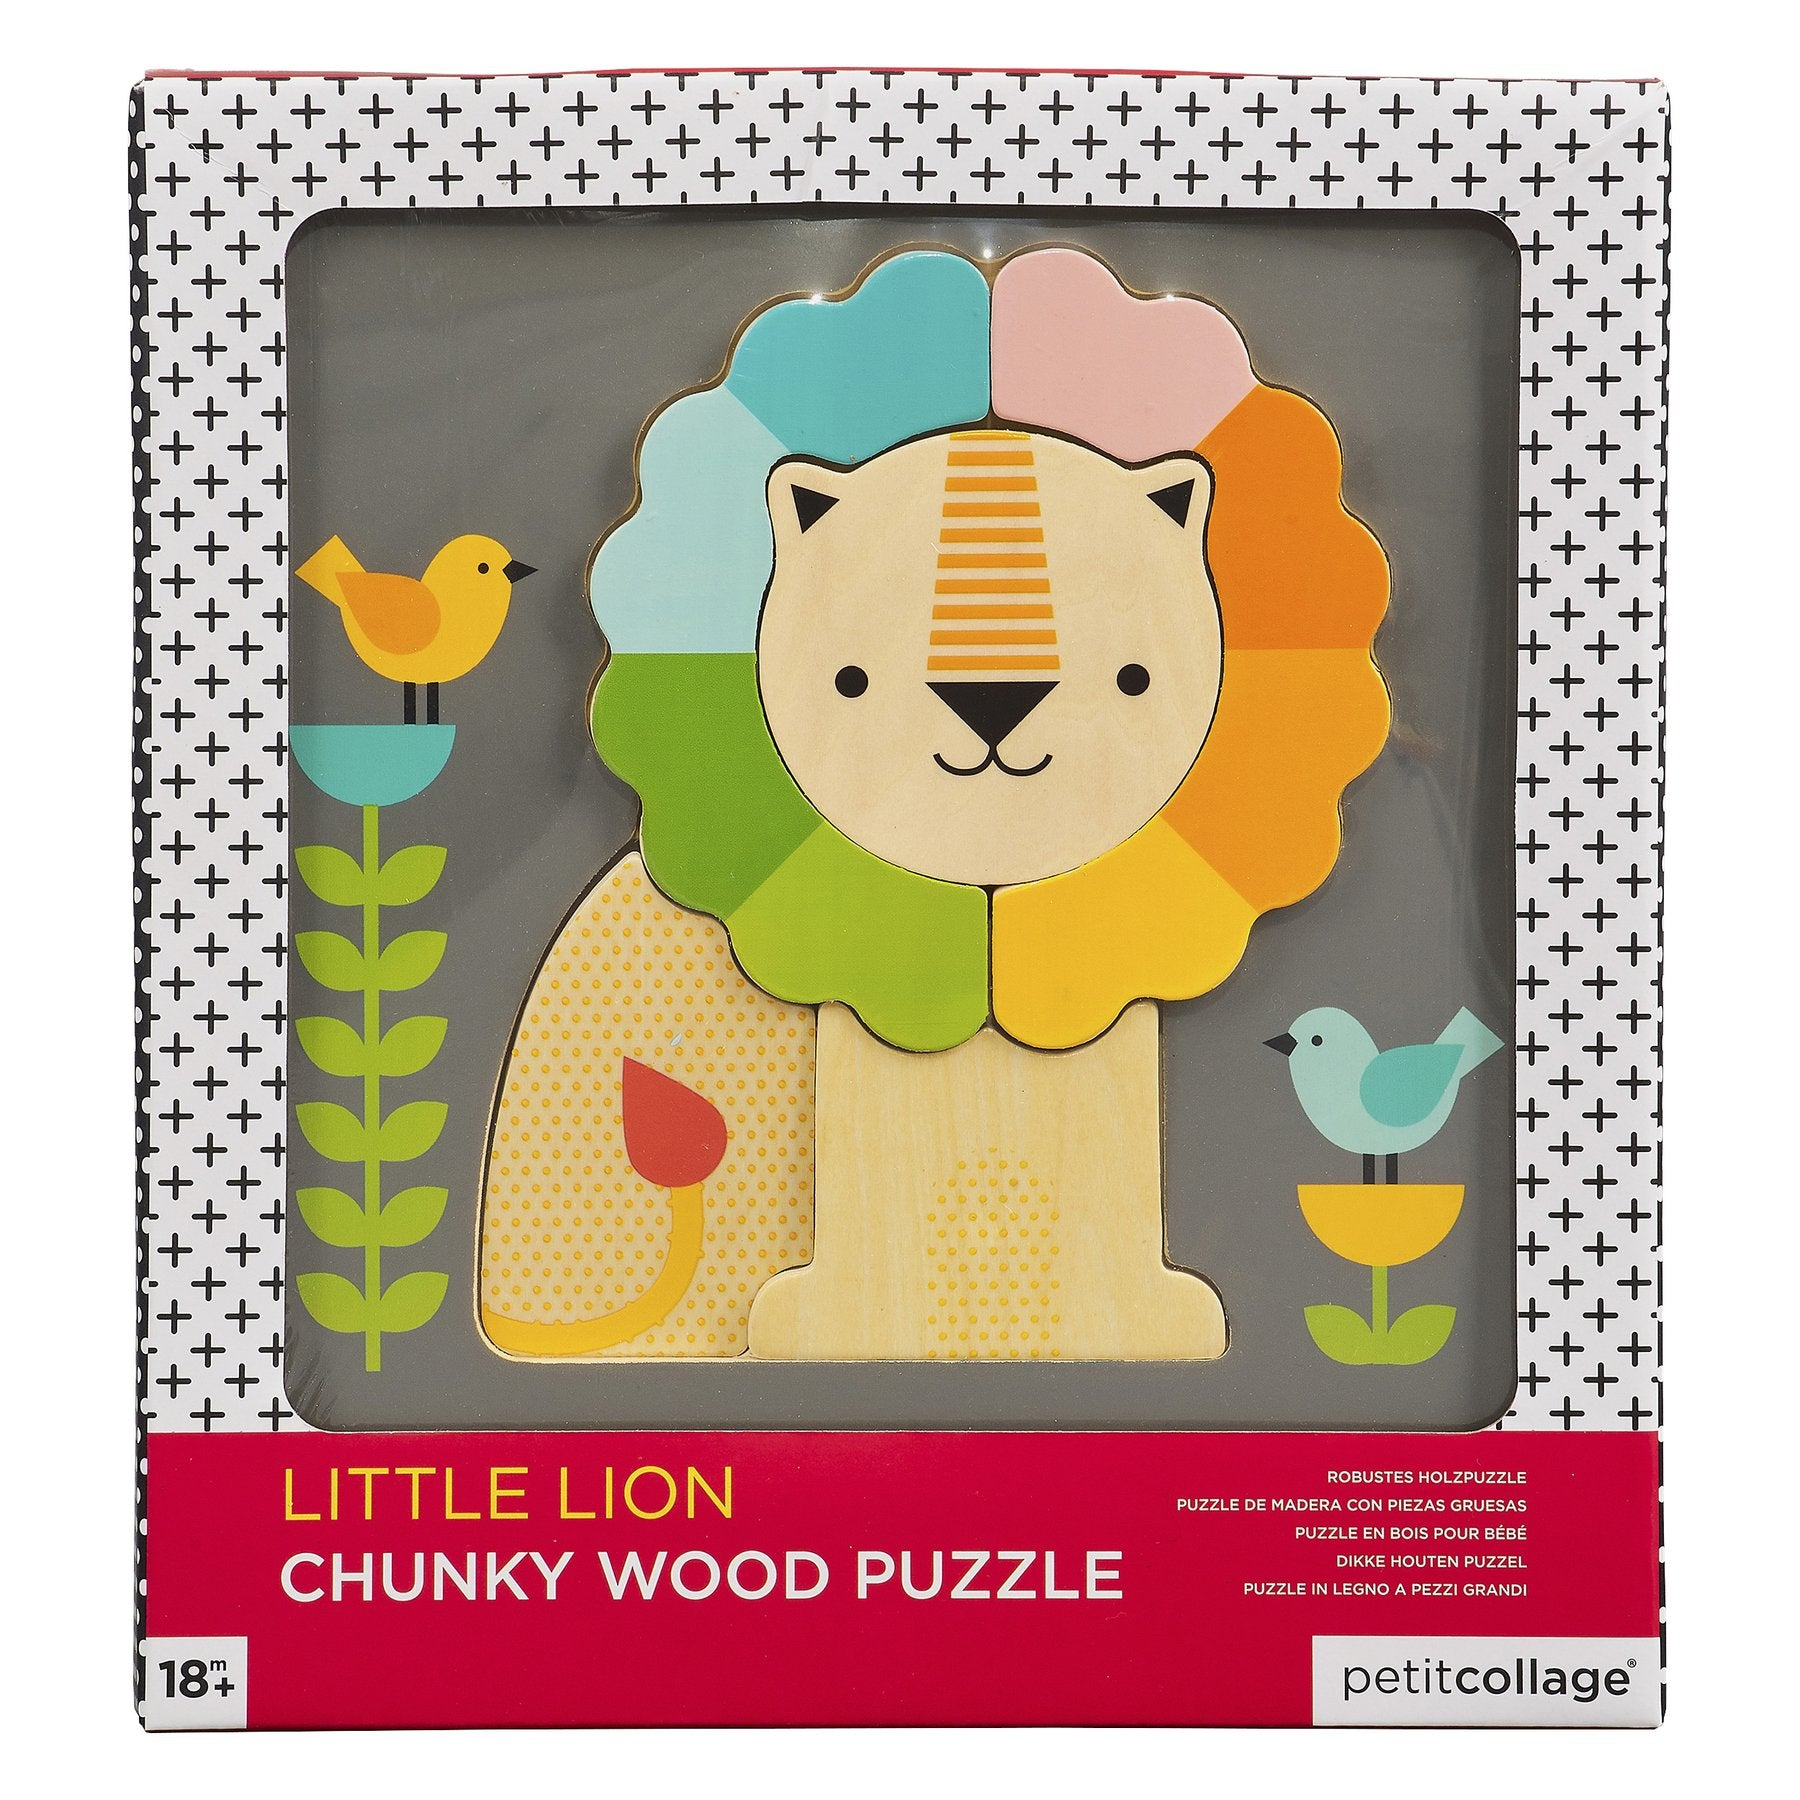 Petit Collage: Little Lion Chunky Wood Puzzle